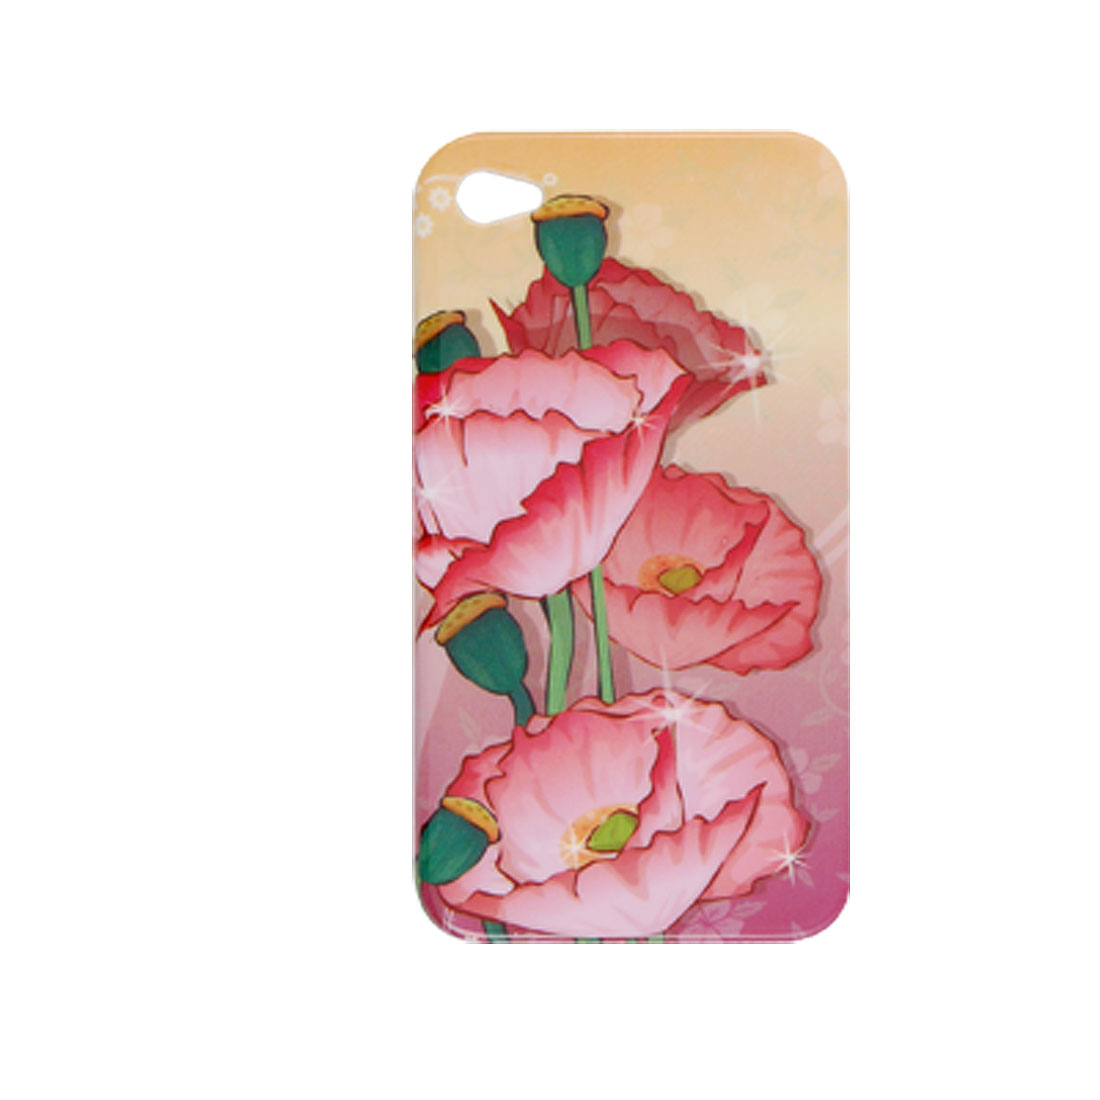 Lotus Buds Flower Print Hard Plastic Cover for iPhone 4